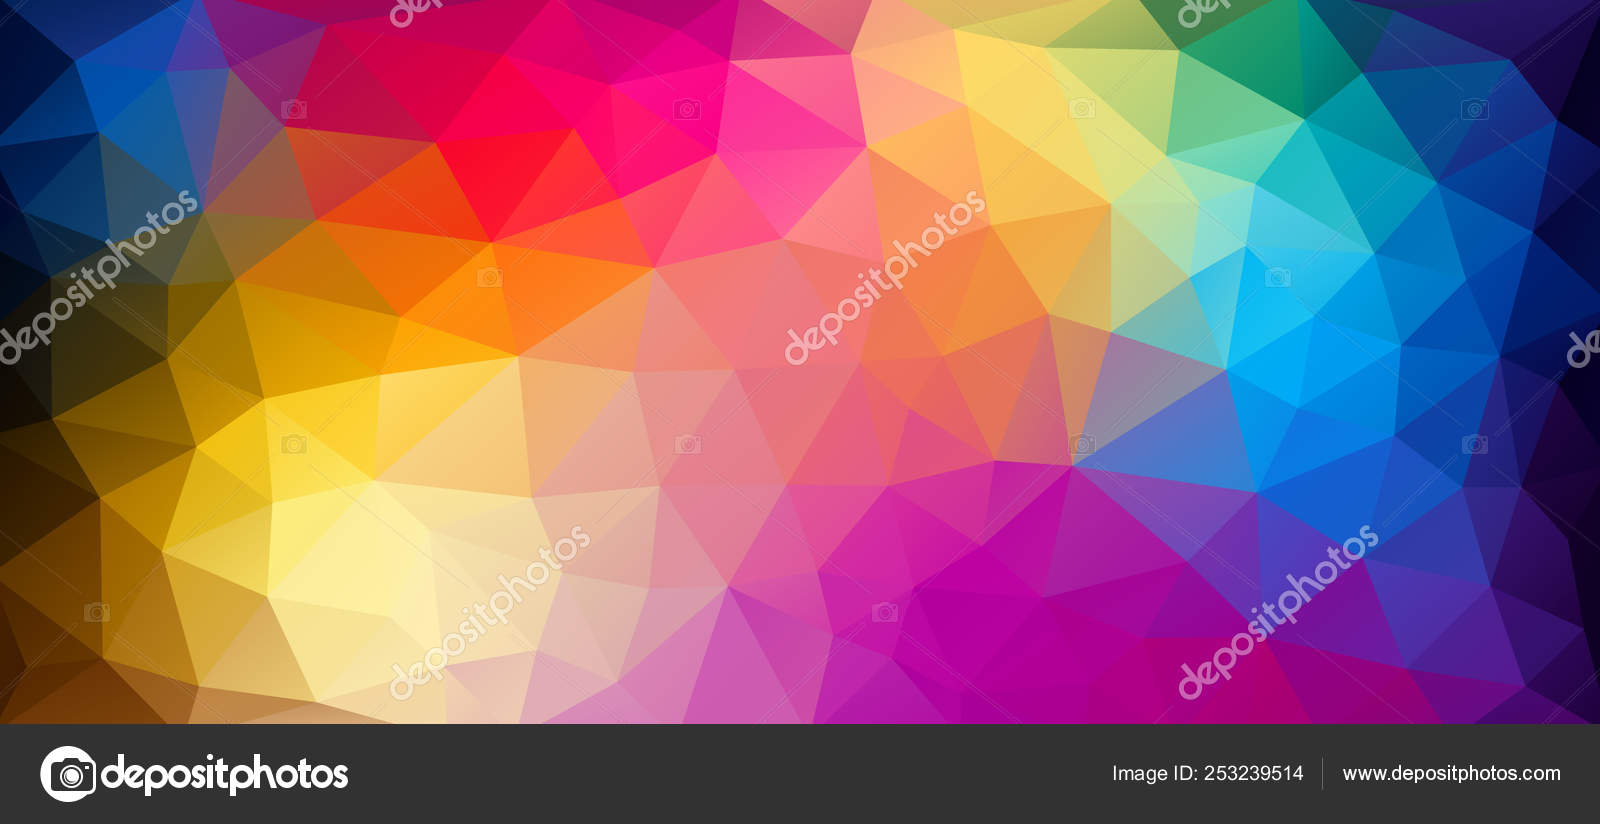 Flat Horizontal Bright Color Geometric Triangle Wallpaper